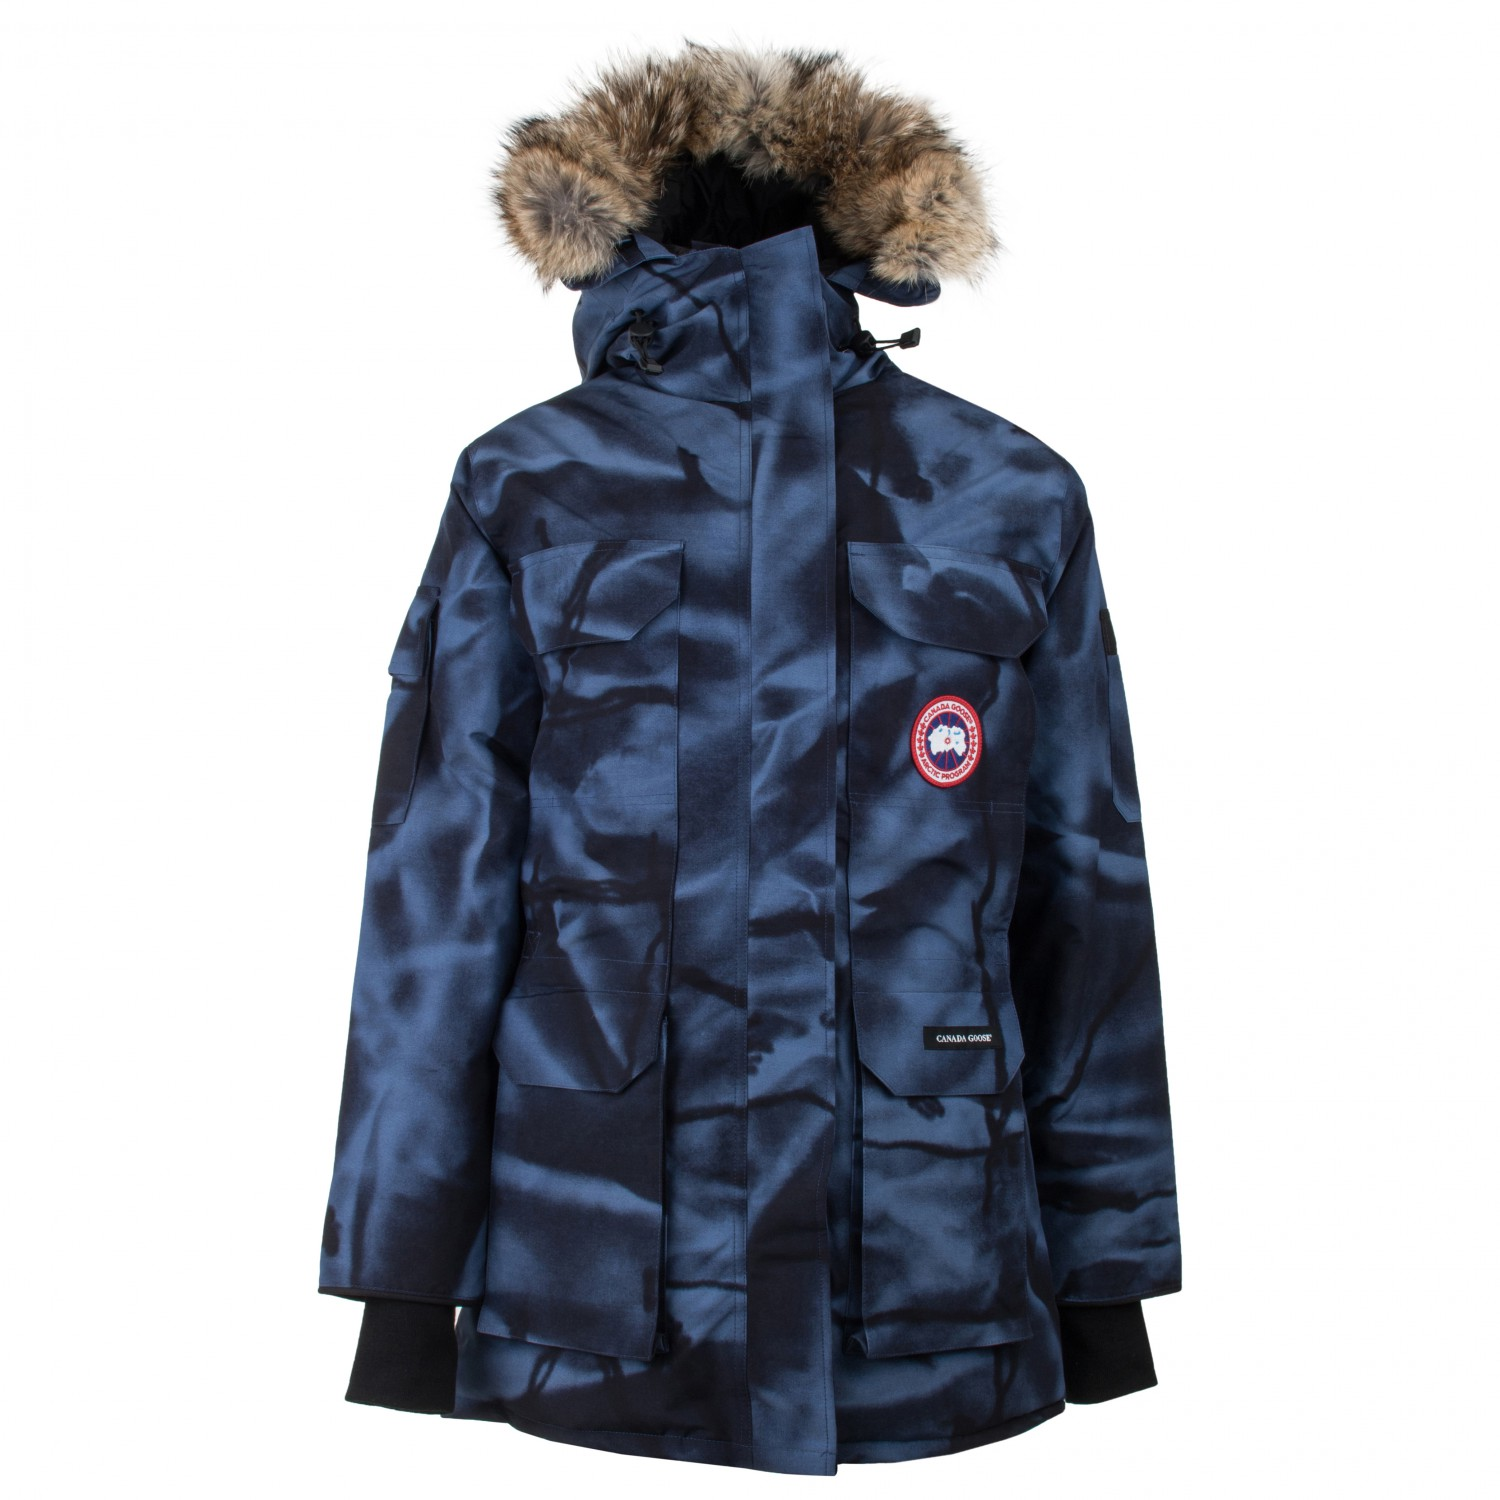 buy popular d4ad5 ece35 Canada Goose - Women's Expedition Parka - Winterjacke - Black | XXS